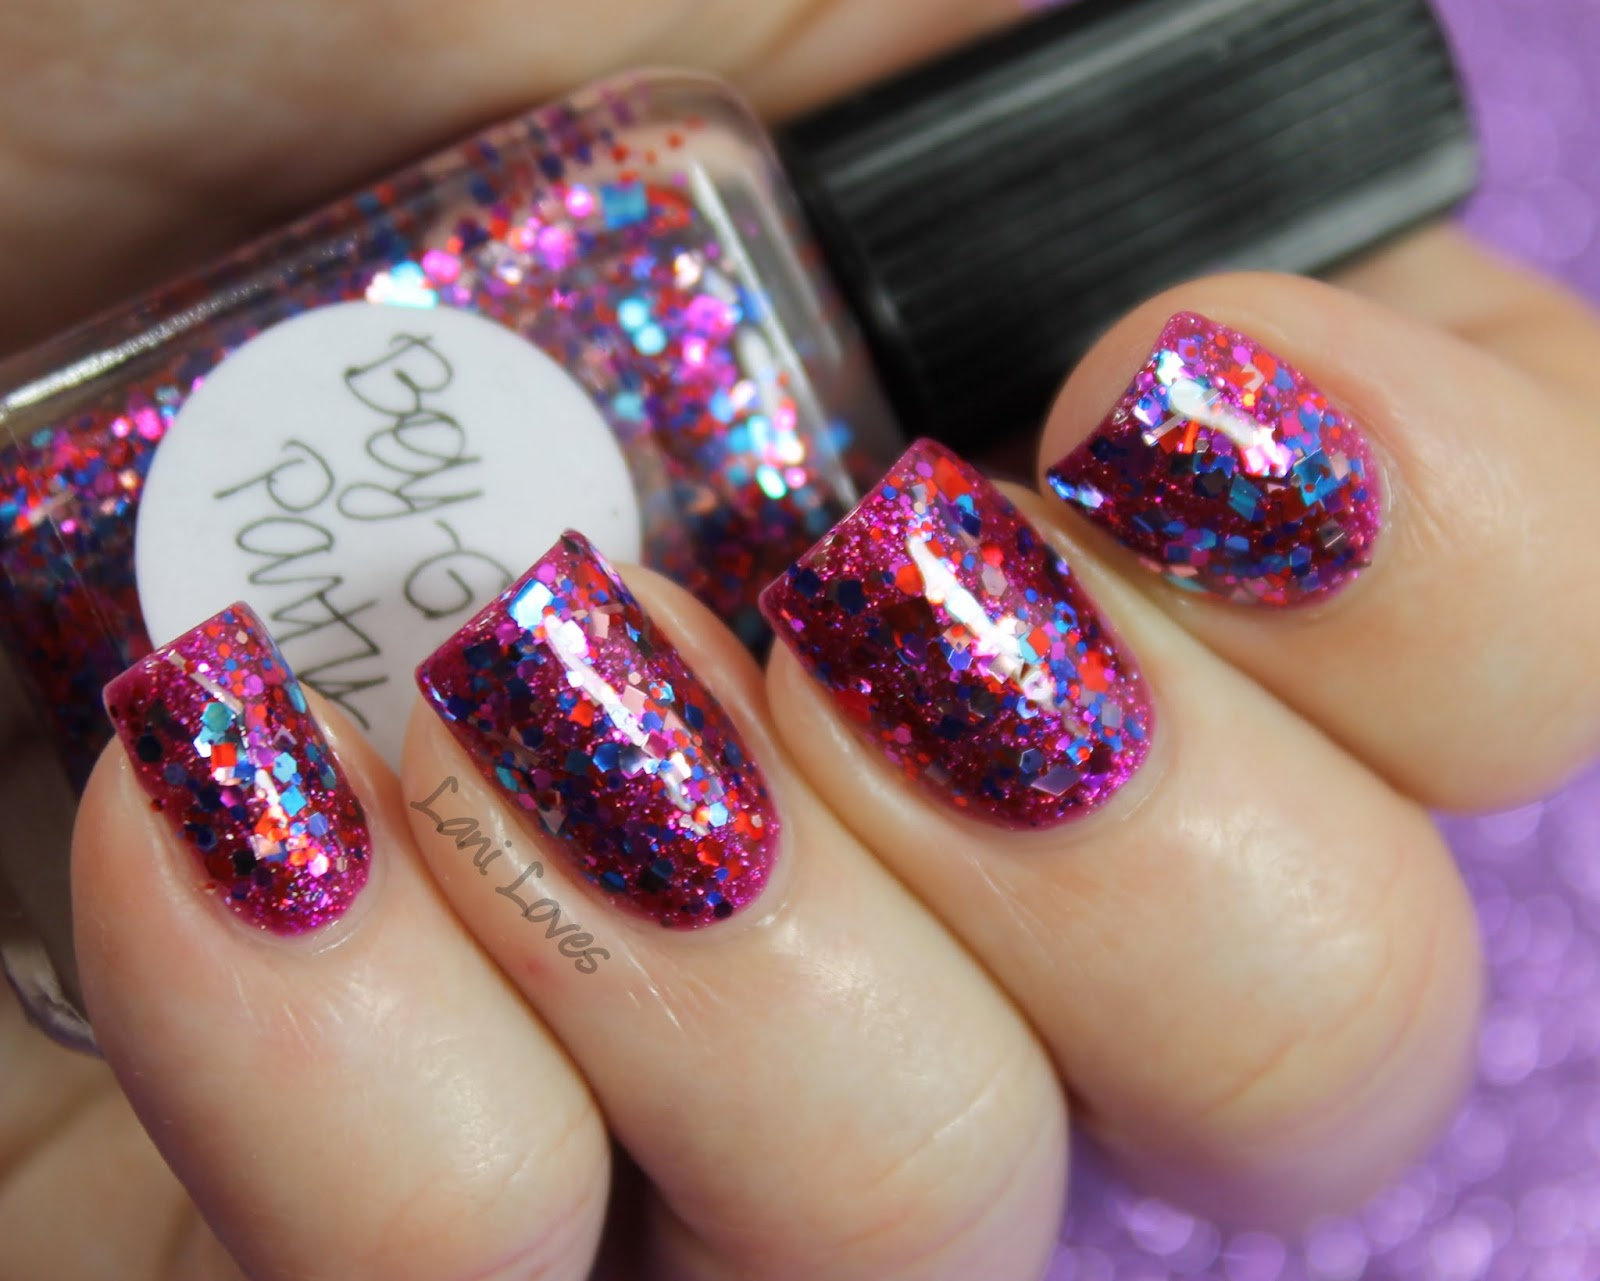 Lynnderella Boy-Girl Party nail polish swatch